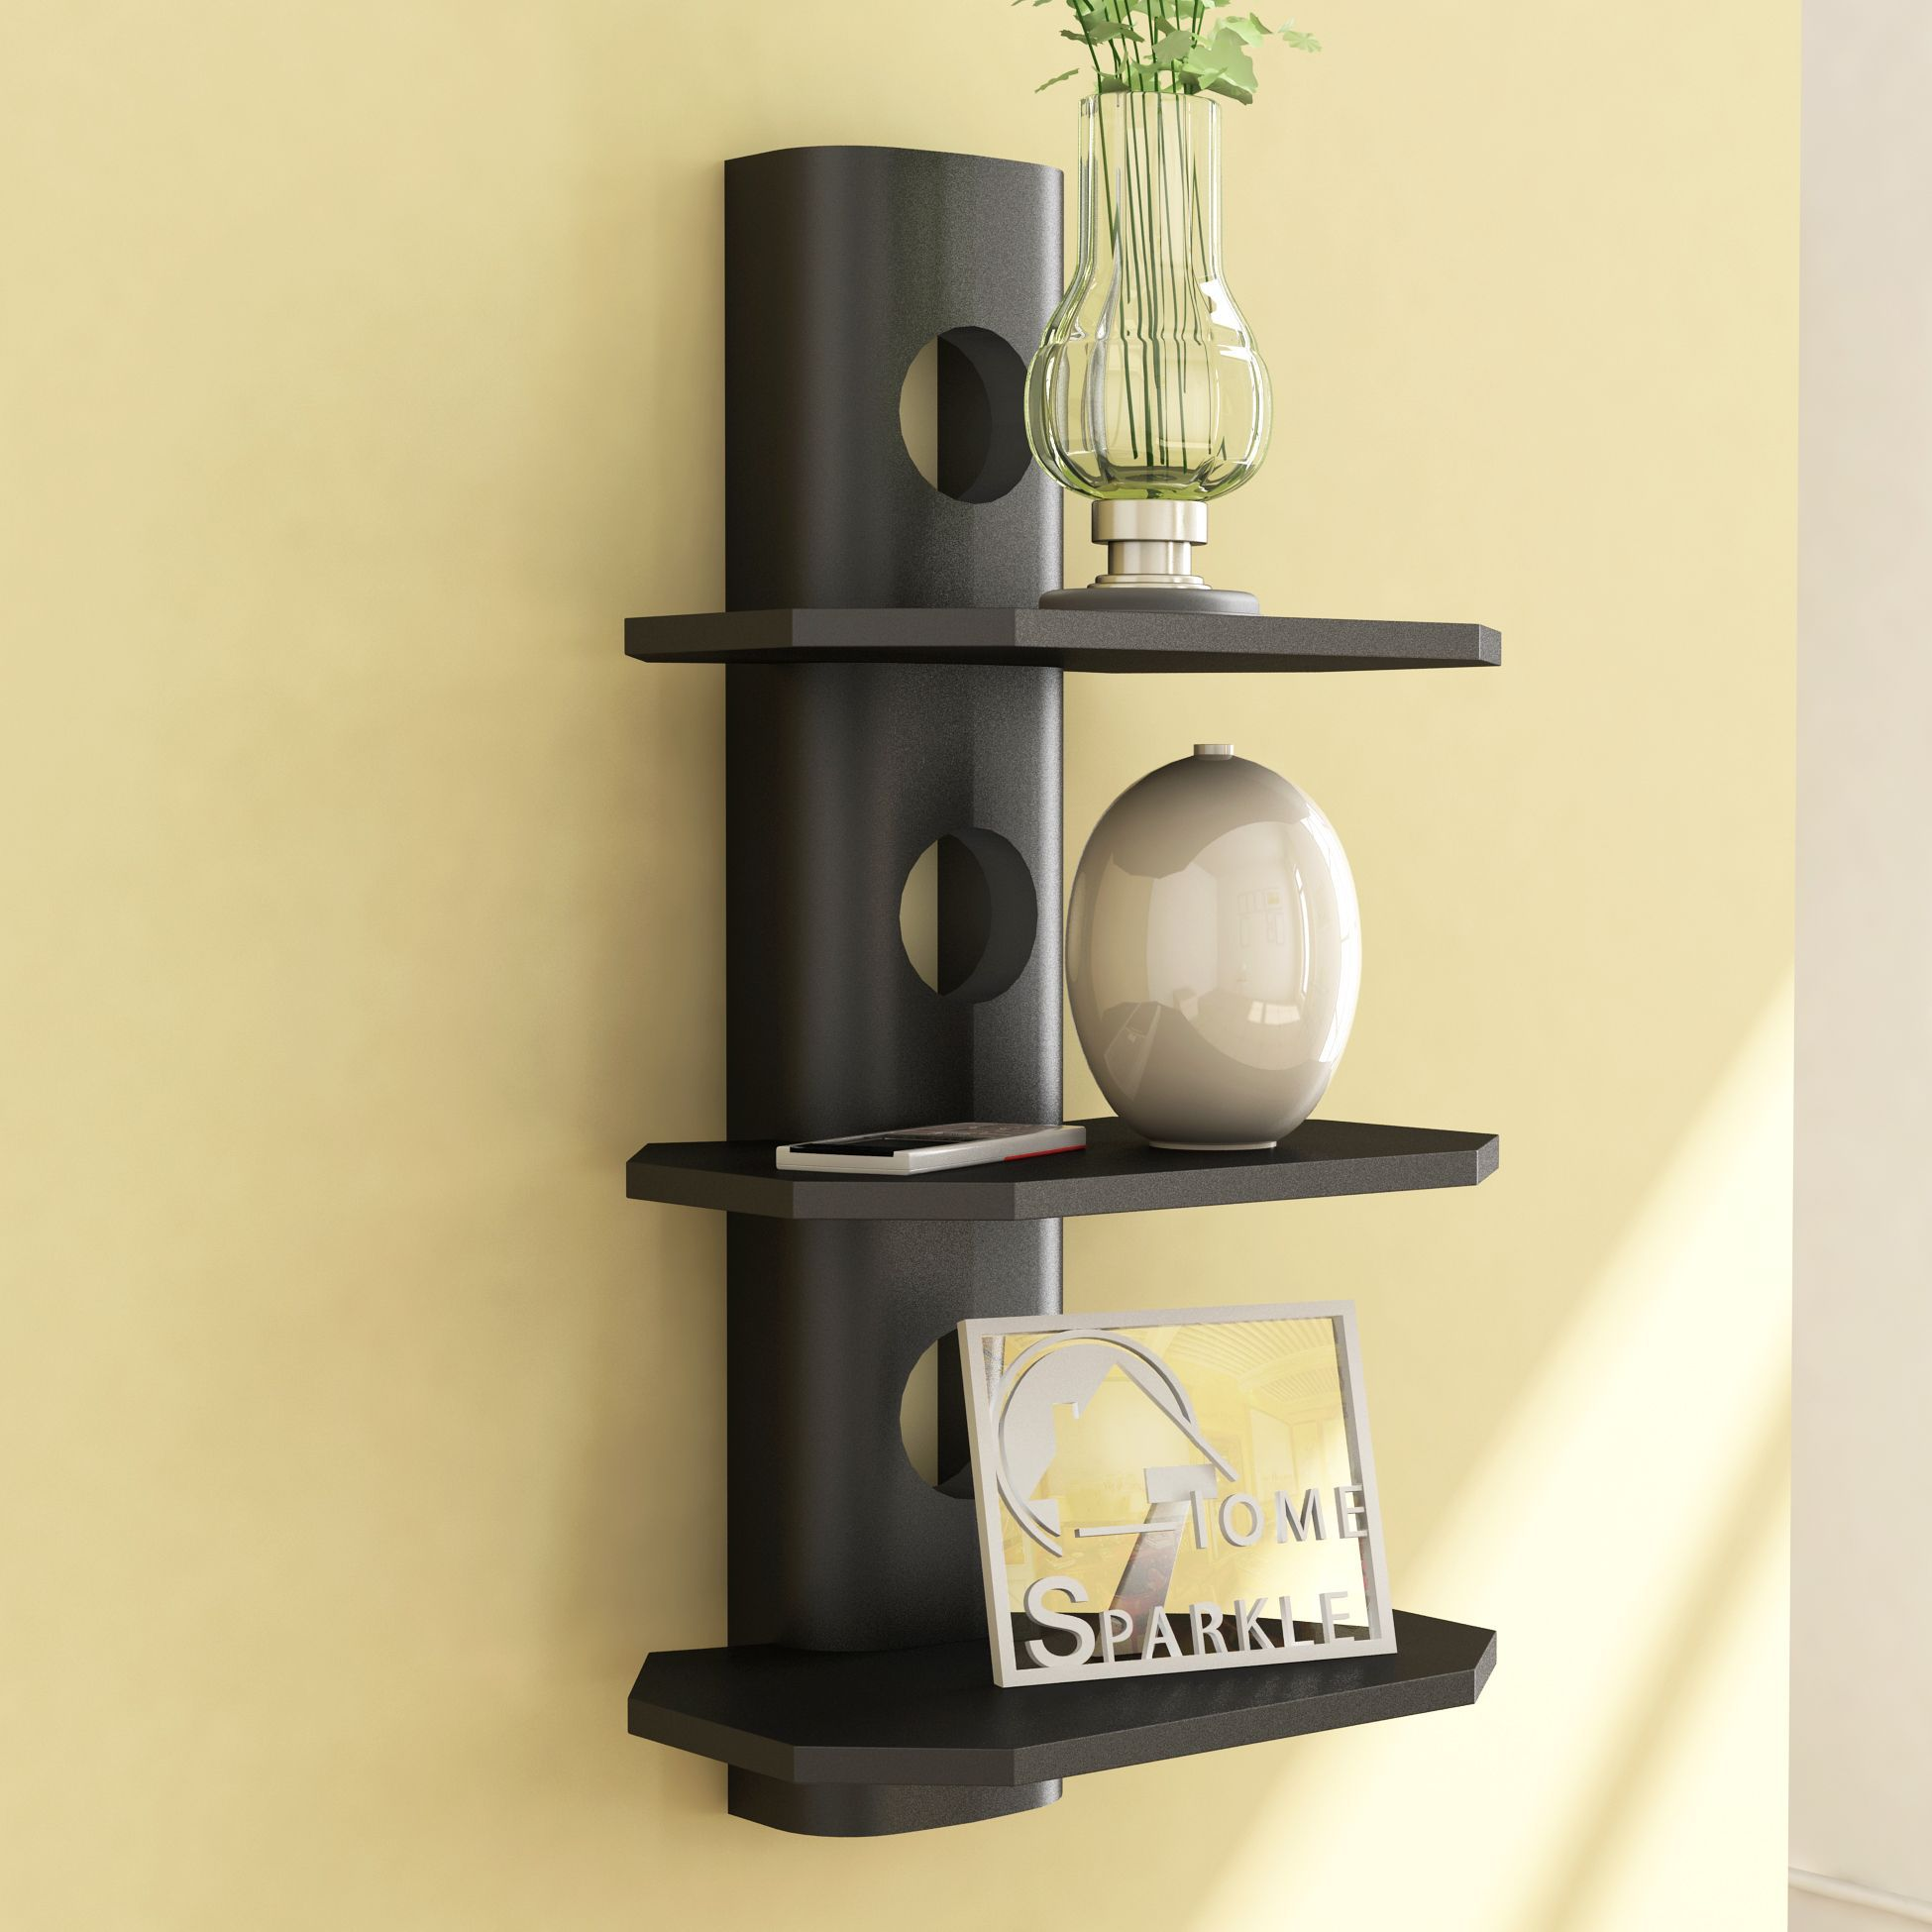 Home Sparkle MDF 3 Tier Round Shelf For Wall Décor -Suitable For Living Room/Bed Room (Designed By Craftsman)